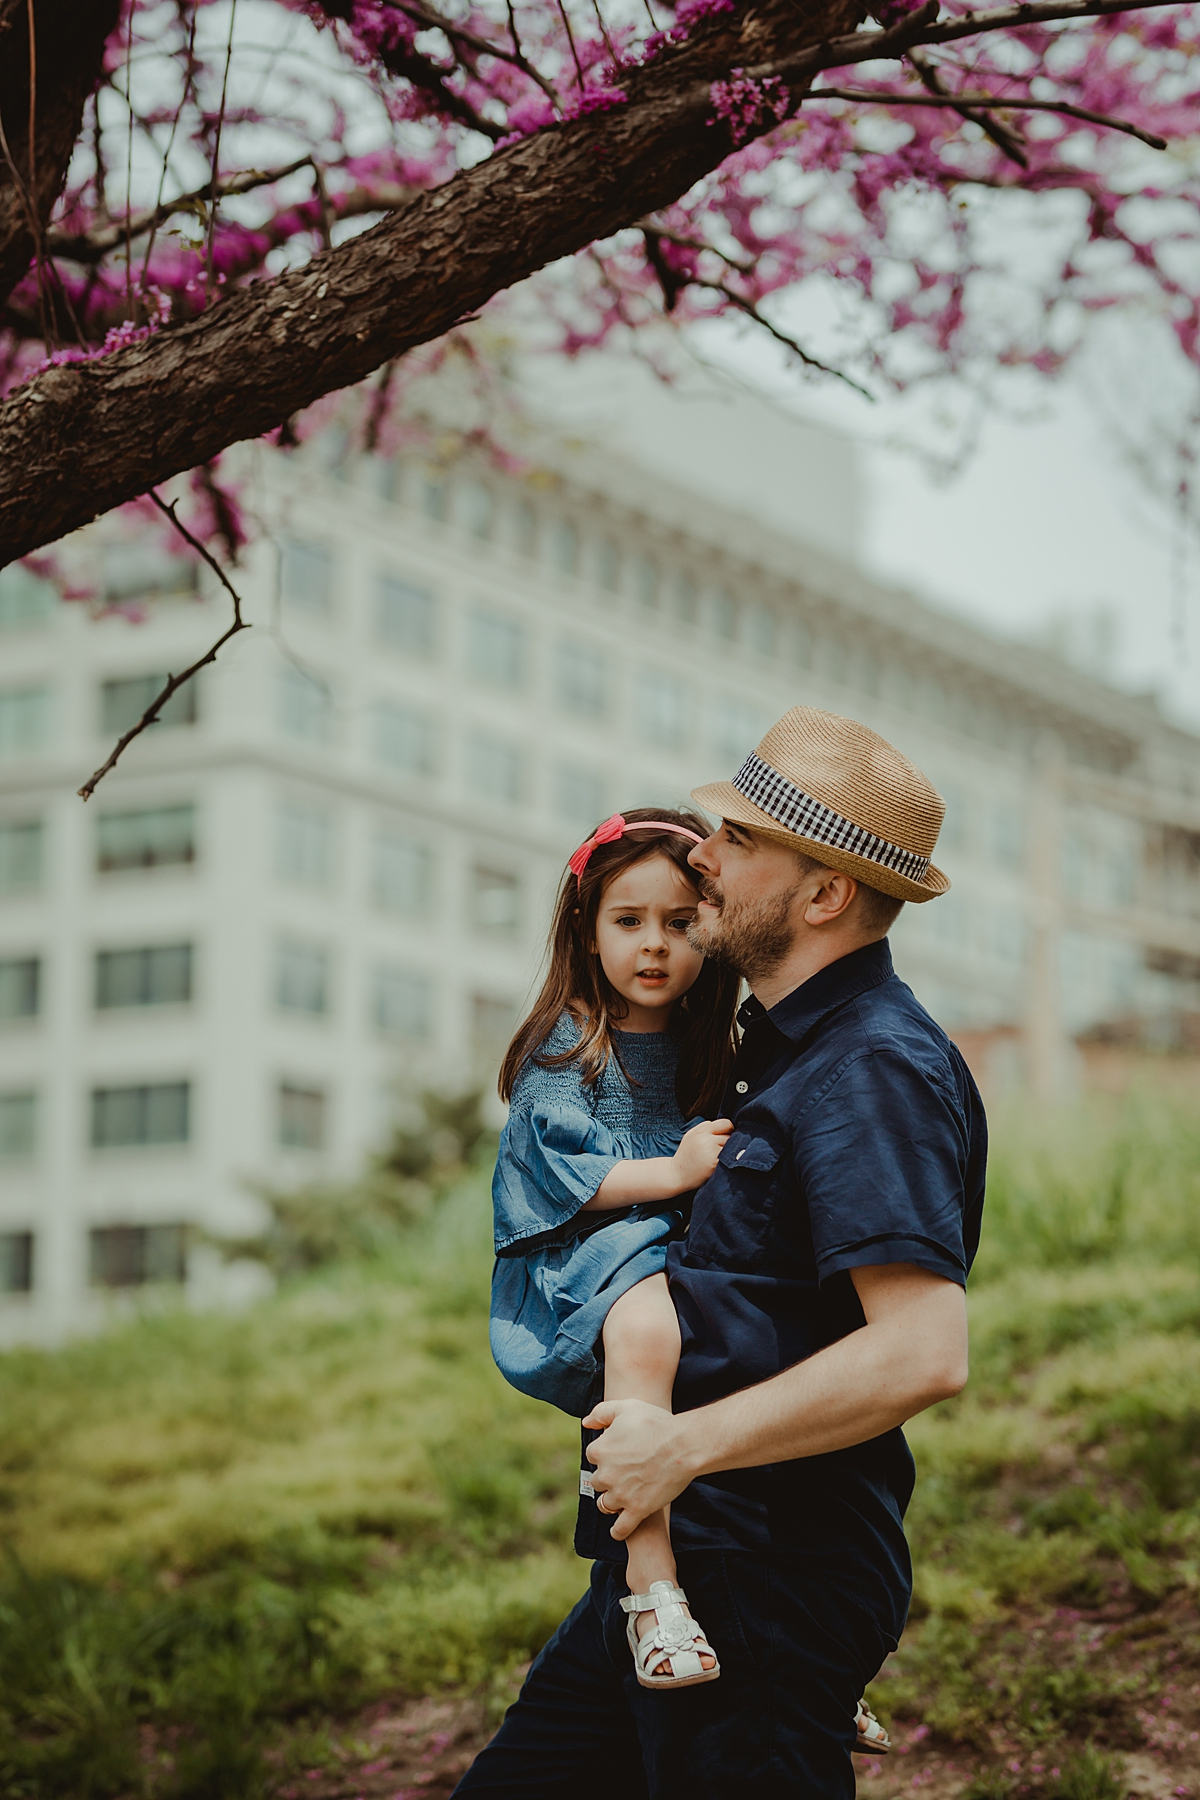 dad and daughter photo taken as they explore blooming cherry blossoms during family photo session in new york city.photo by nyc family and newborn photographer krystil mcdowall